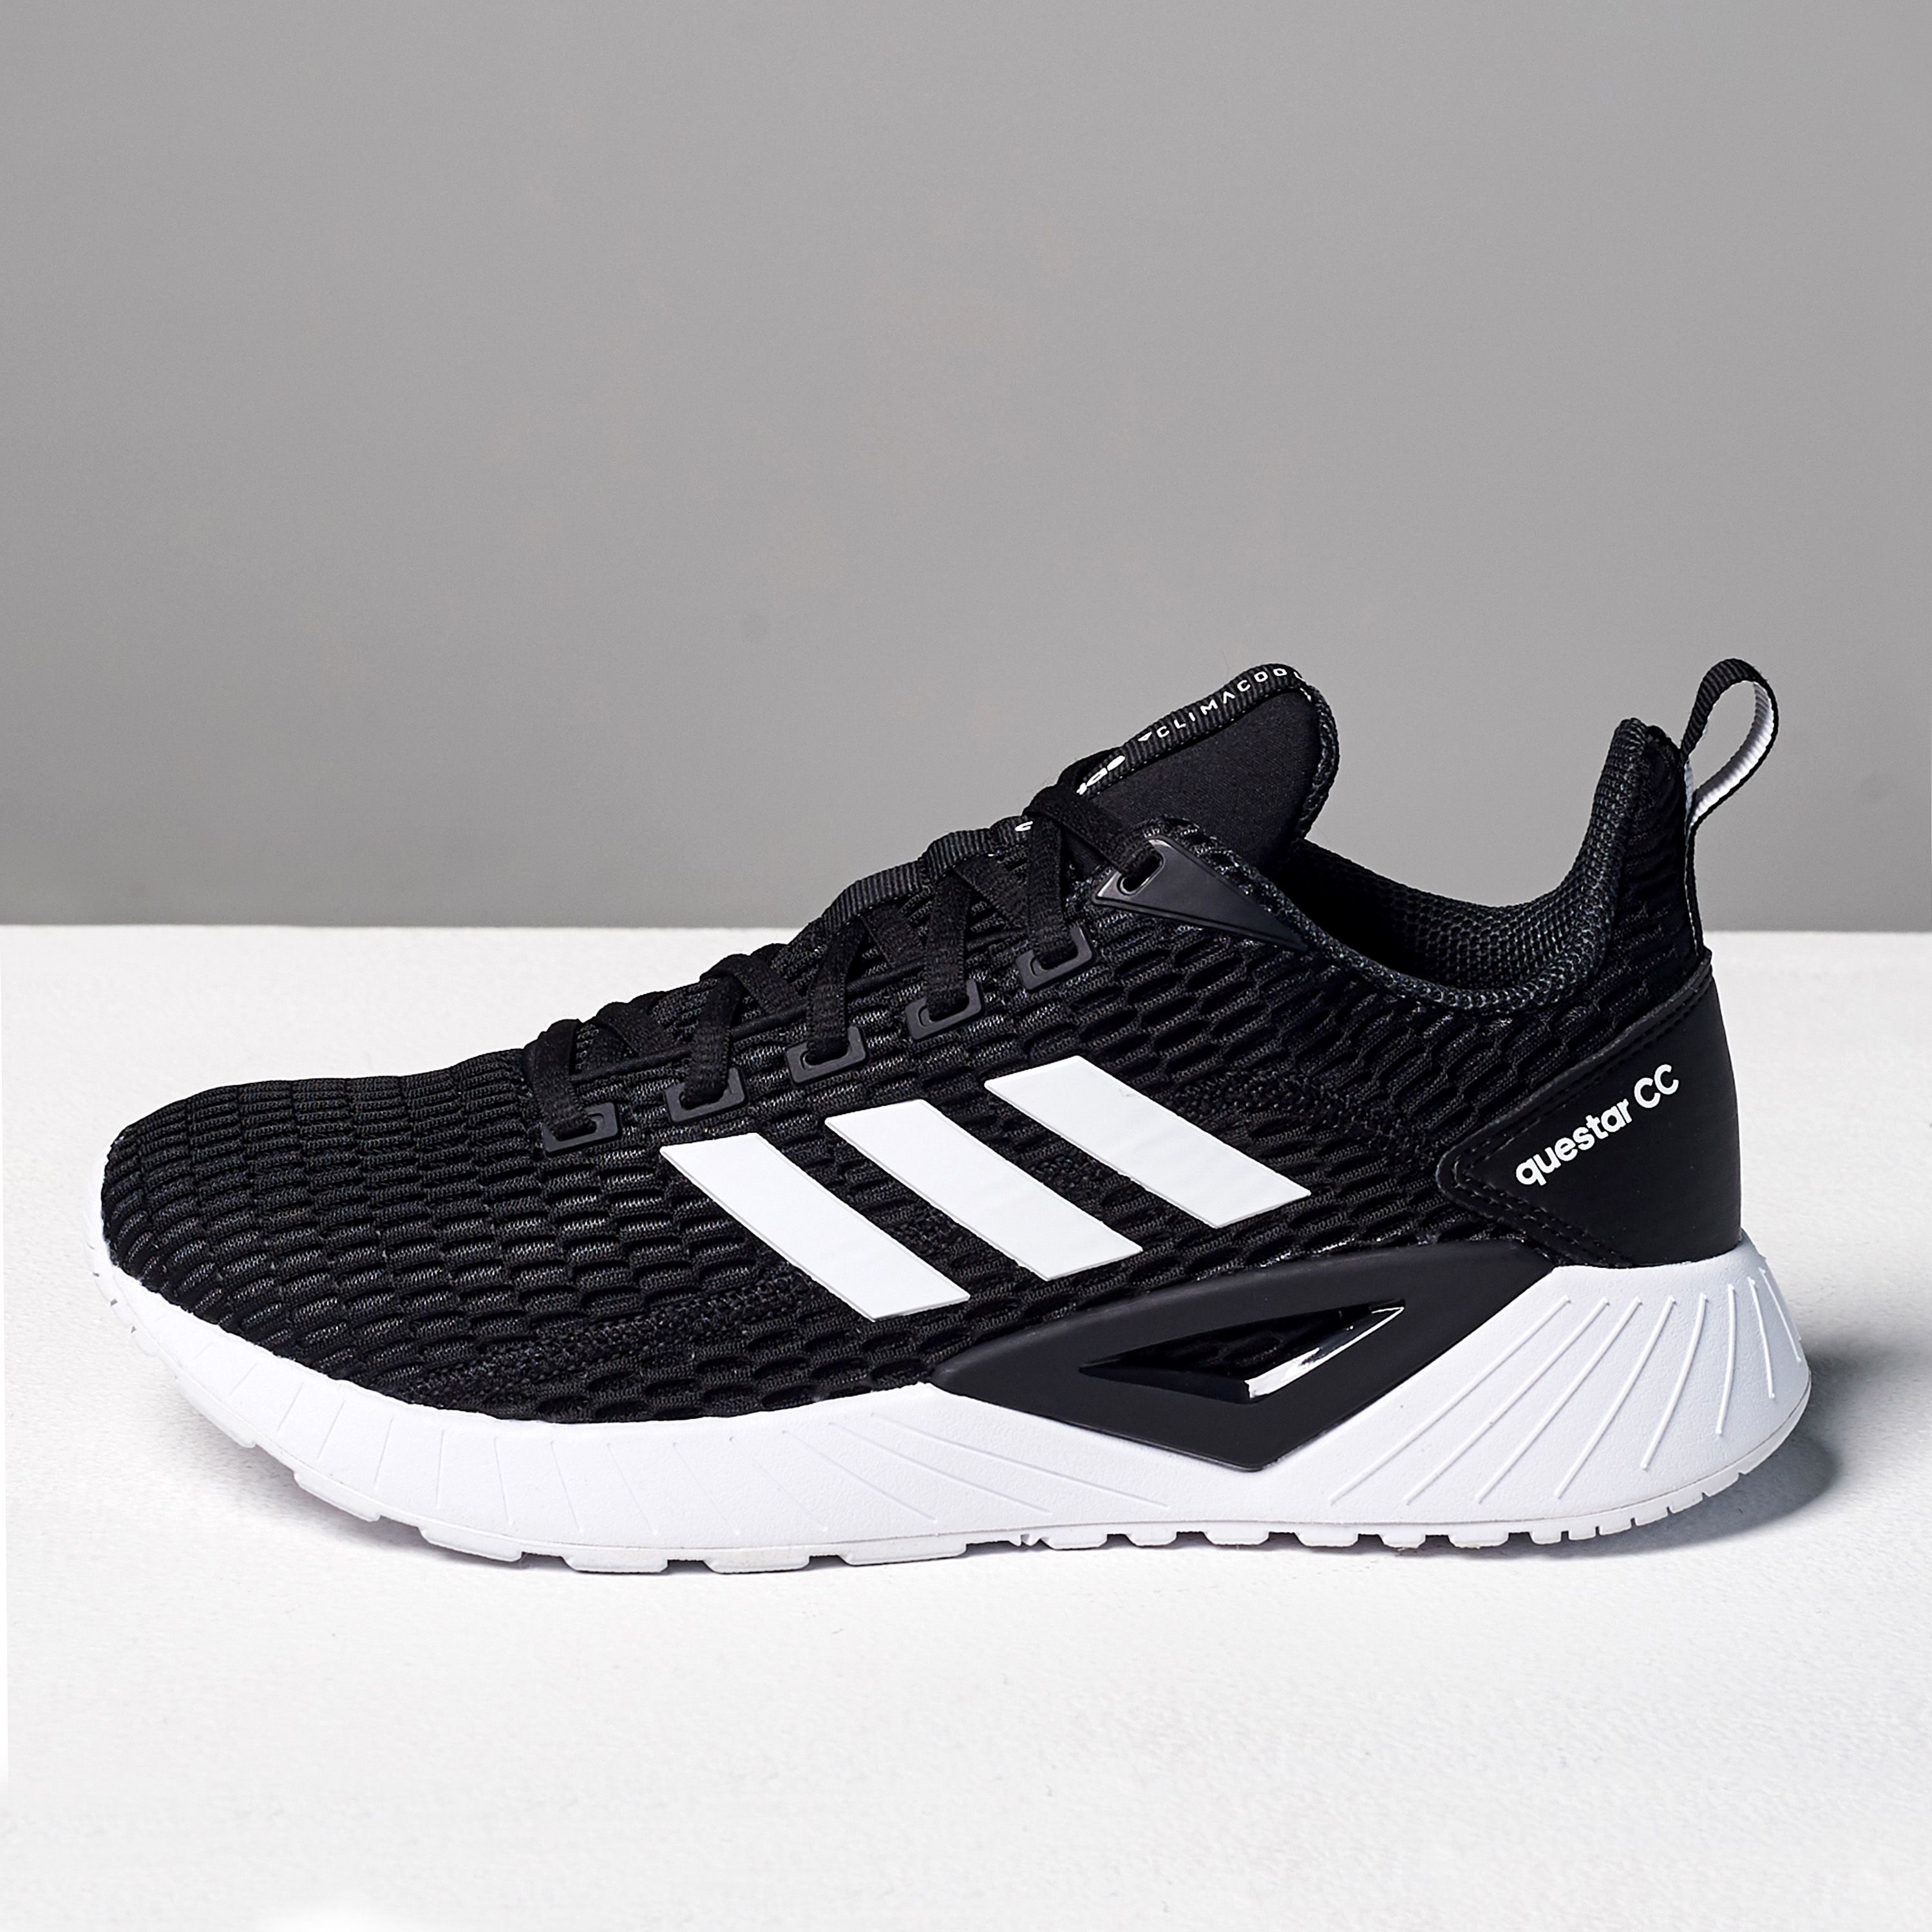 83d228927287 Stay cool on your next run with the adidas questar climacool trainers.